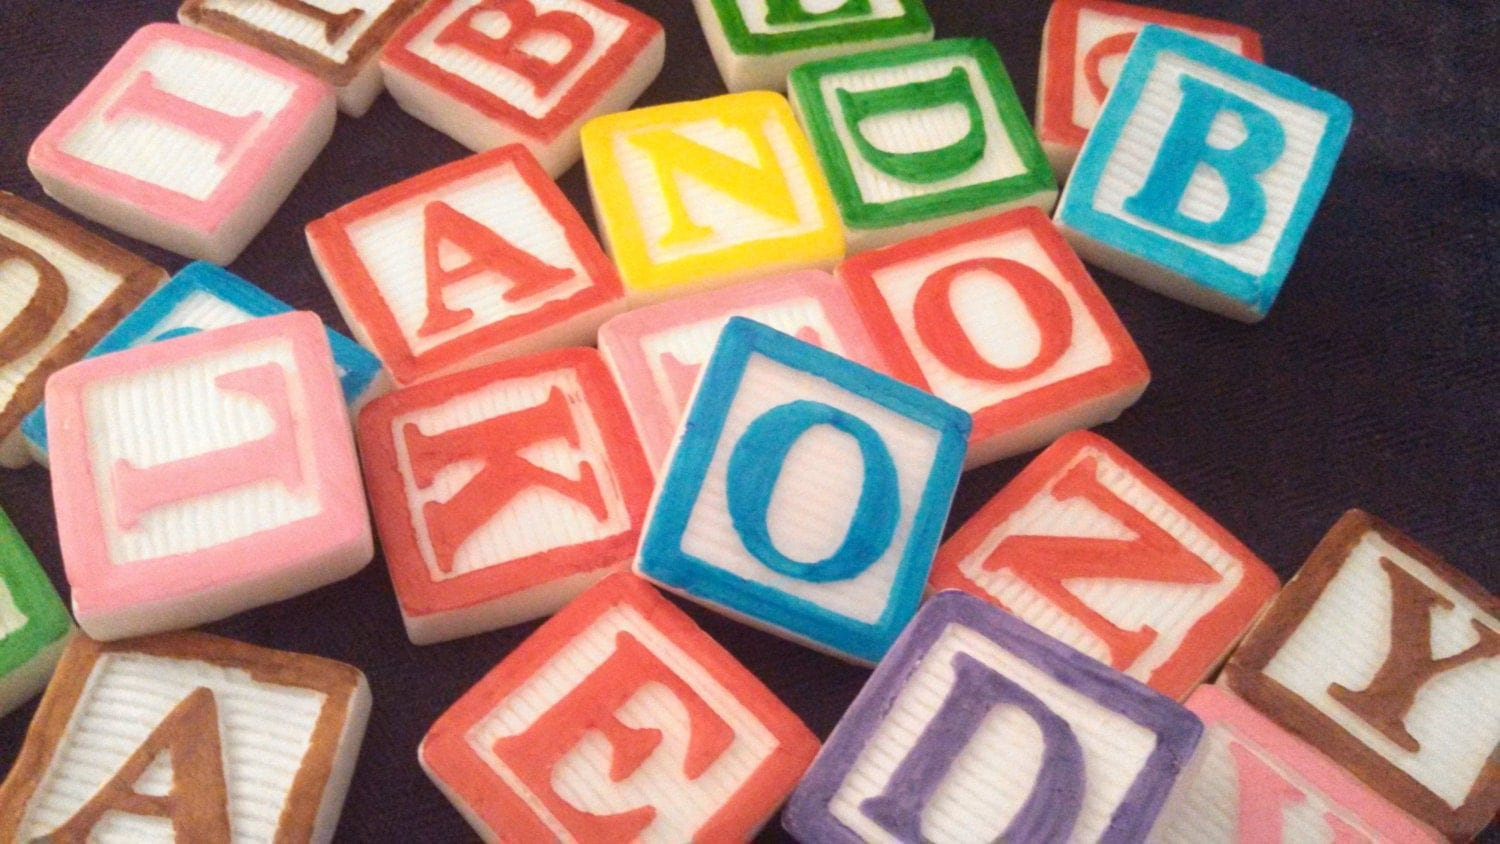 Set of 6 Edible Fondant Candy Block Letters-Cake/Cupcake